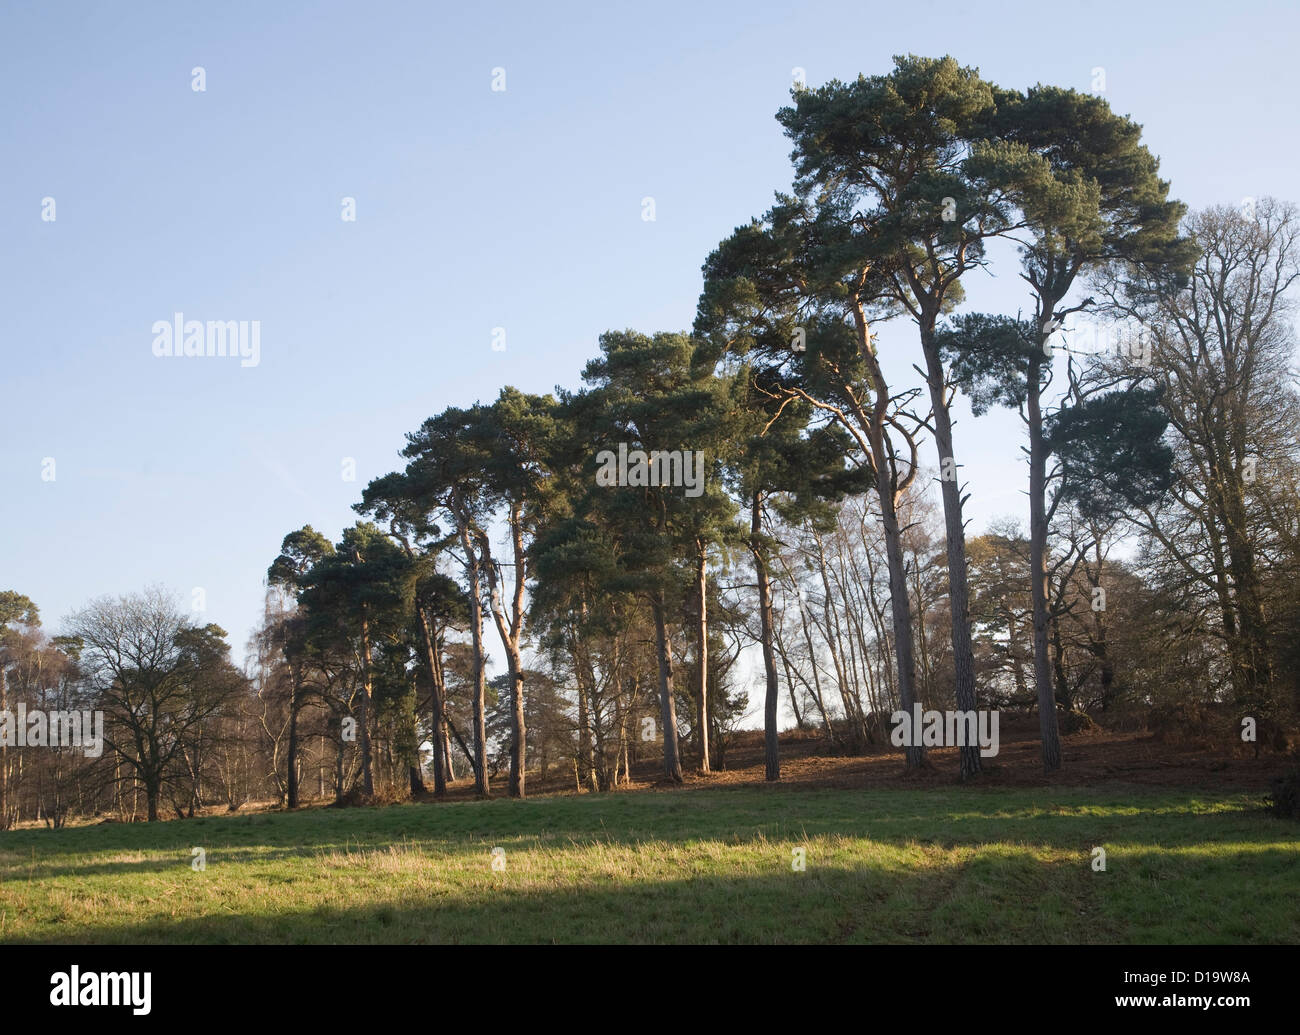 Scots pine trees Sutton Suffolk England - Stock Image